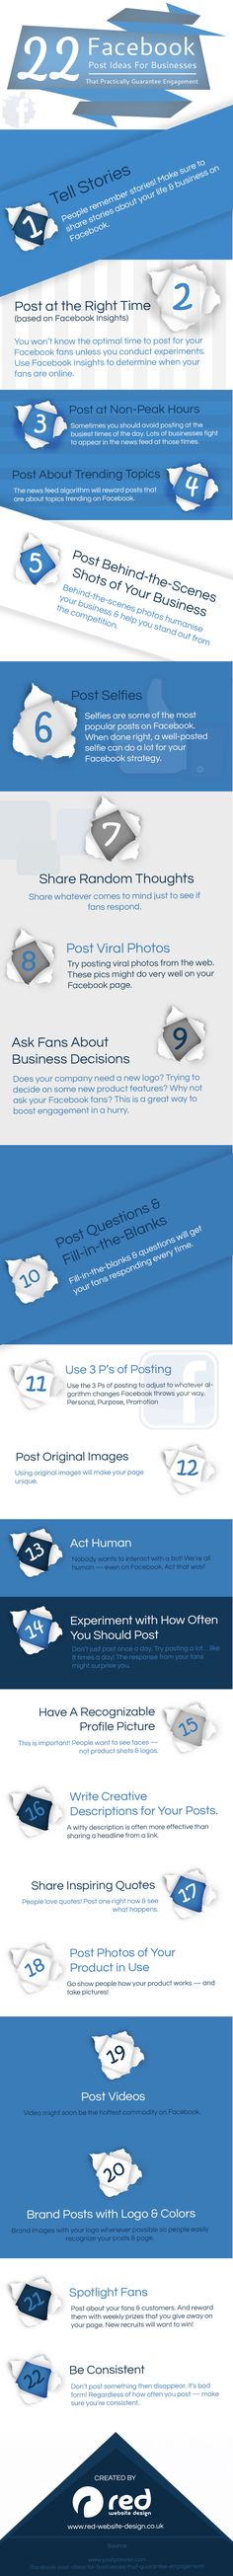 22 #Facebook Post Ideas That Practically Guarantee Likes, Comments and Shares #socialmedia